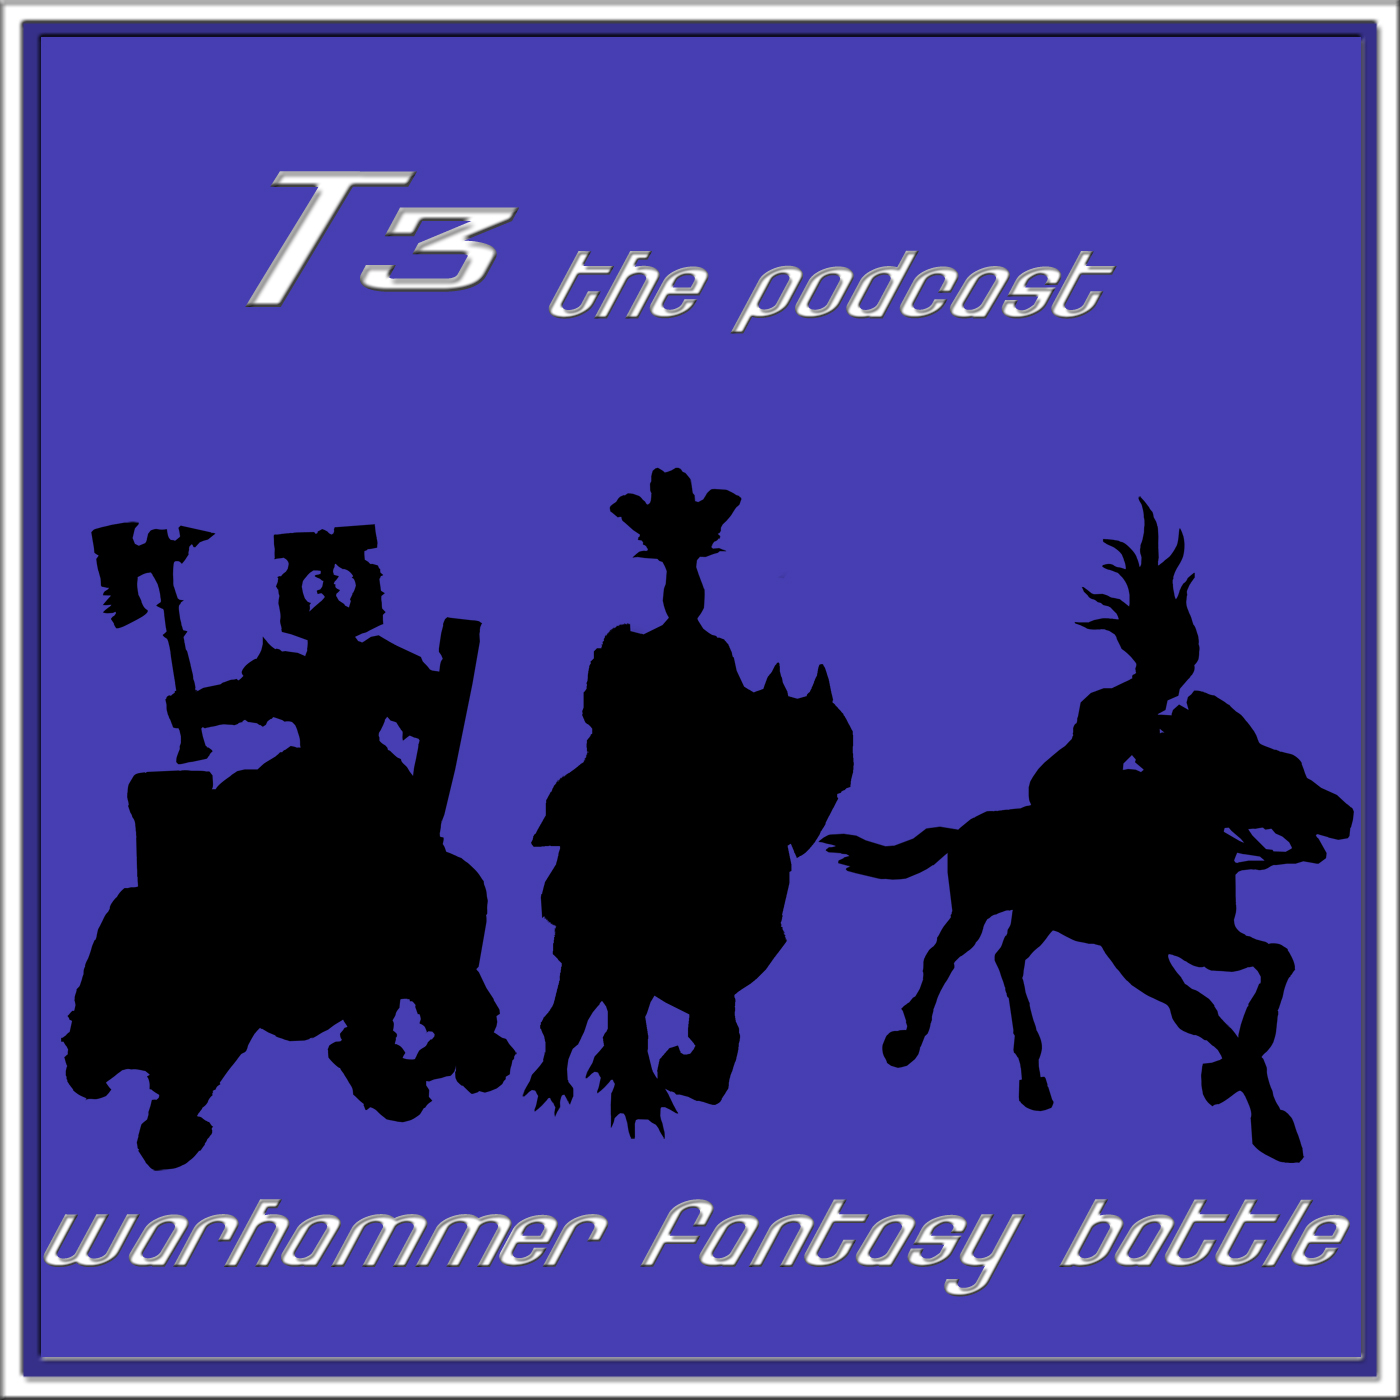 T3 the Warhammer Podcast